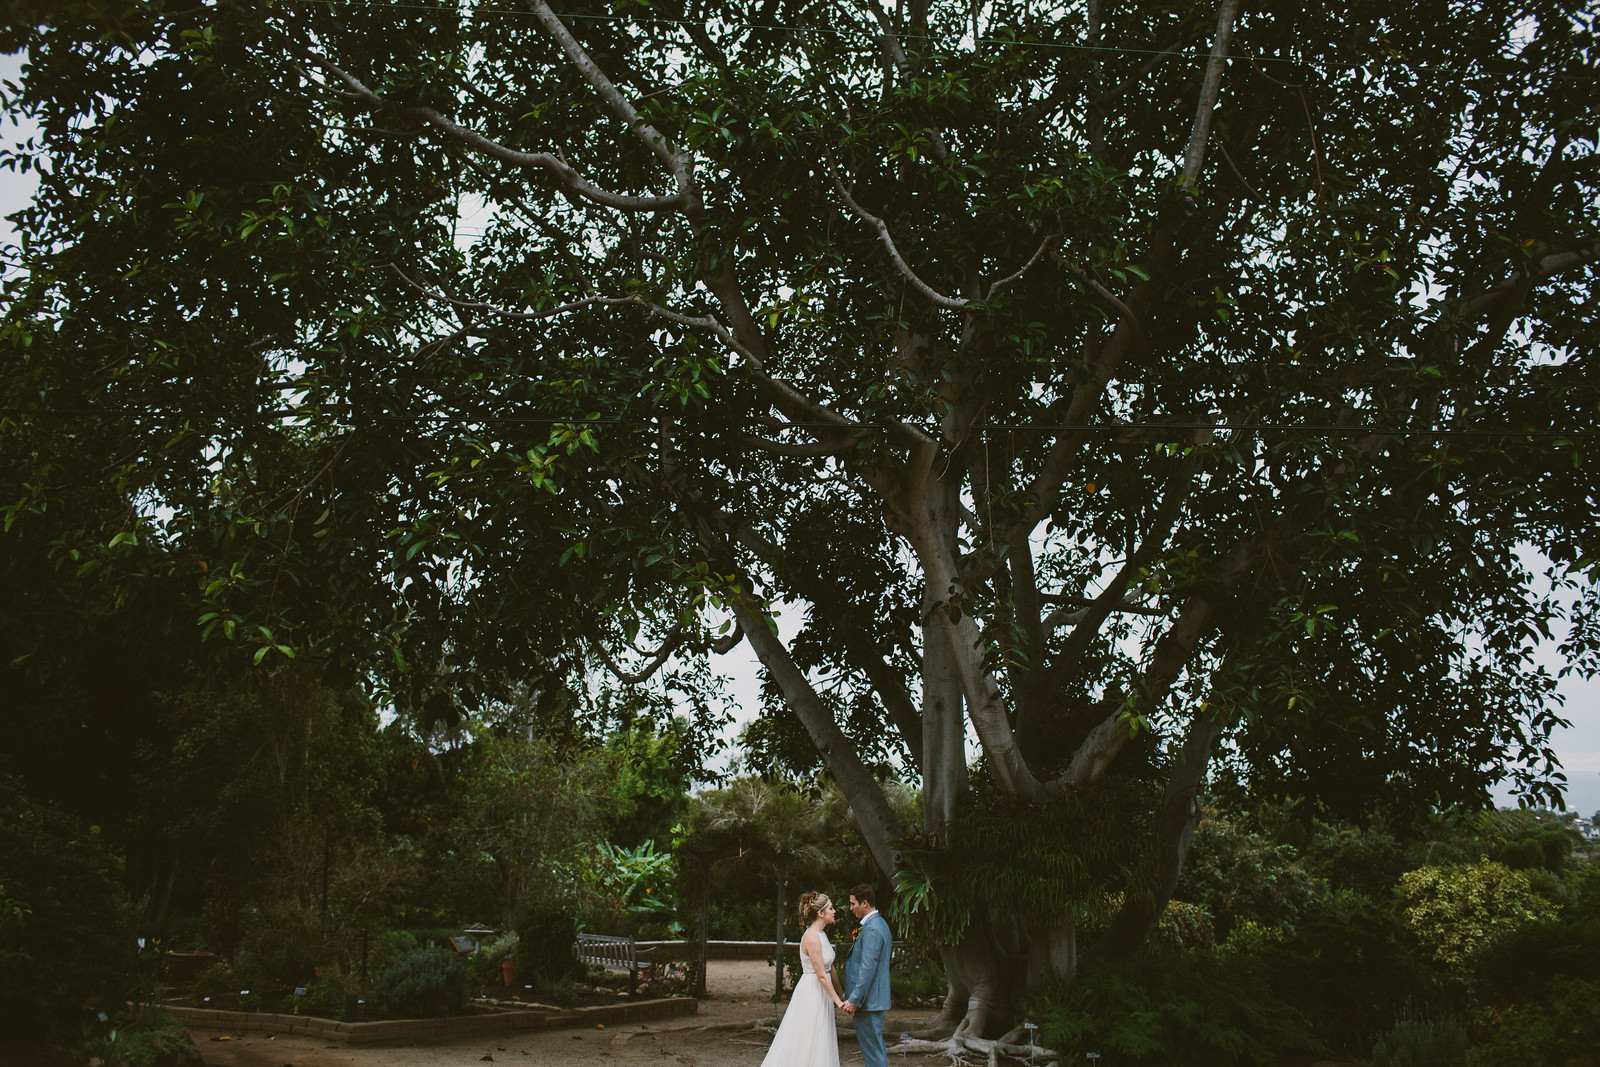 sandiego-botanic-garden-wedding-41.jpg